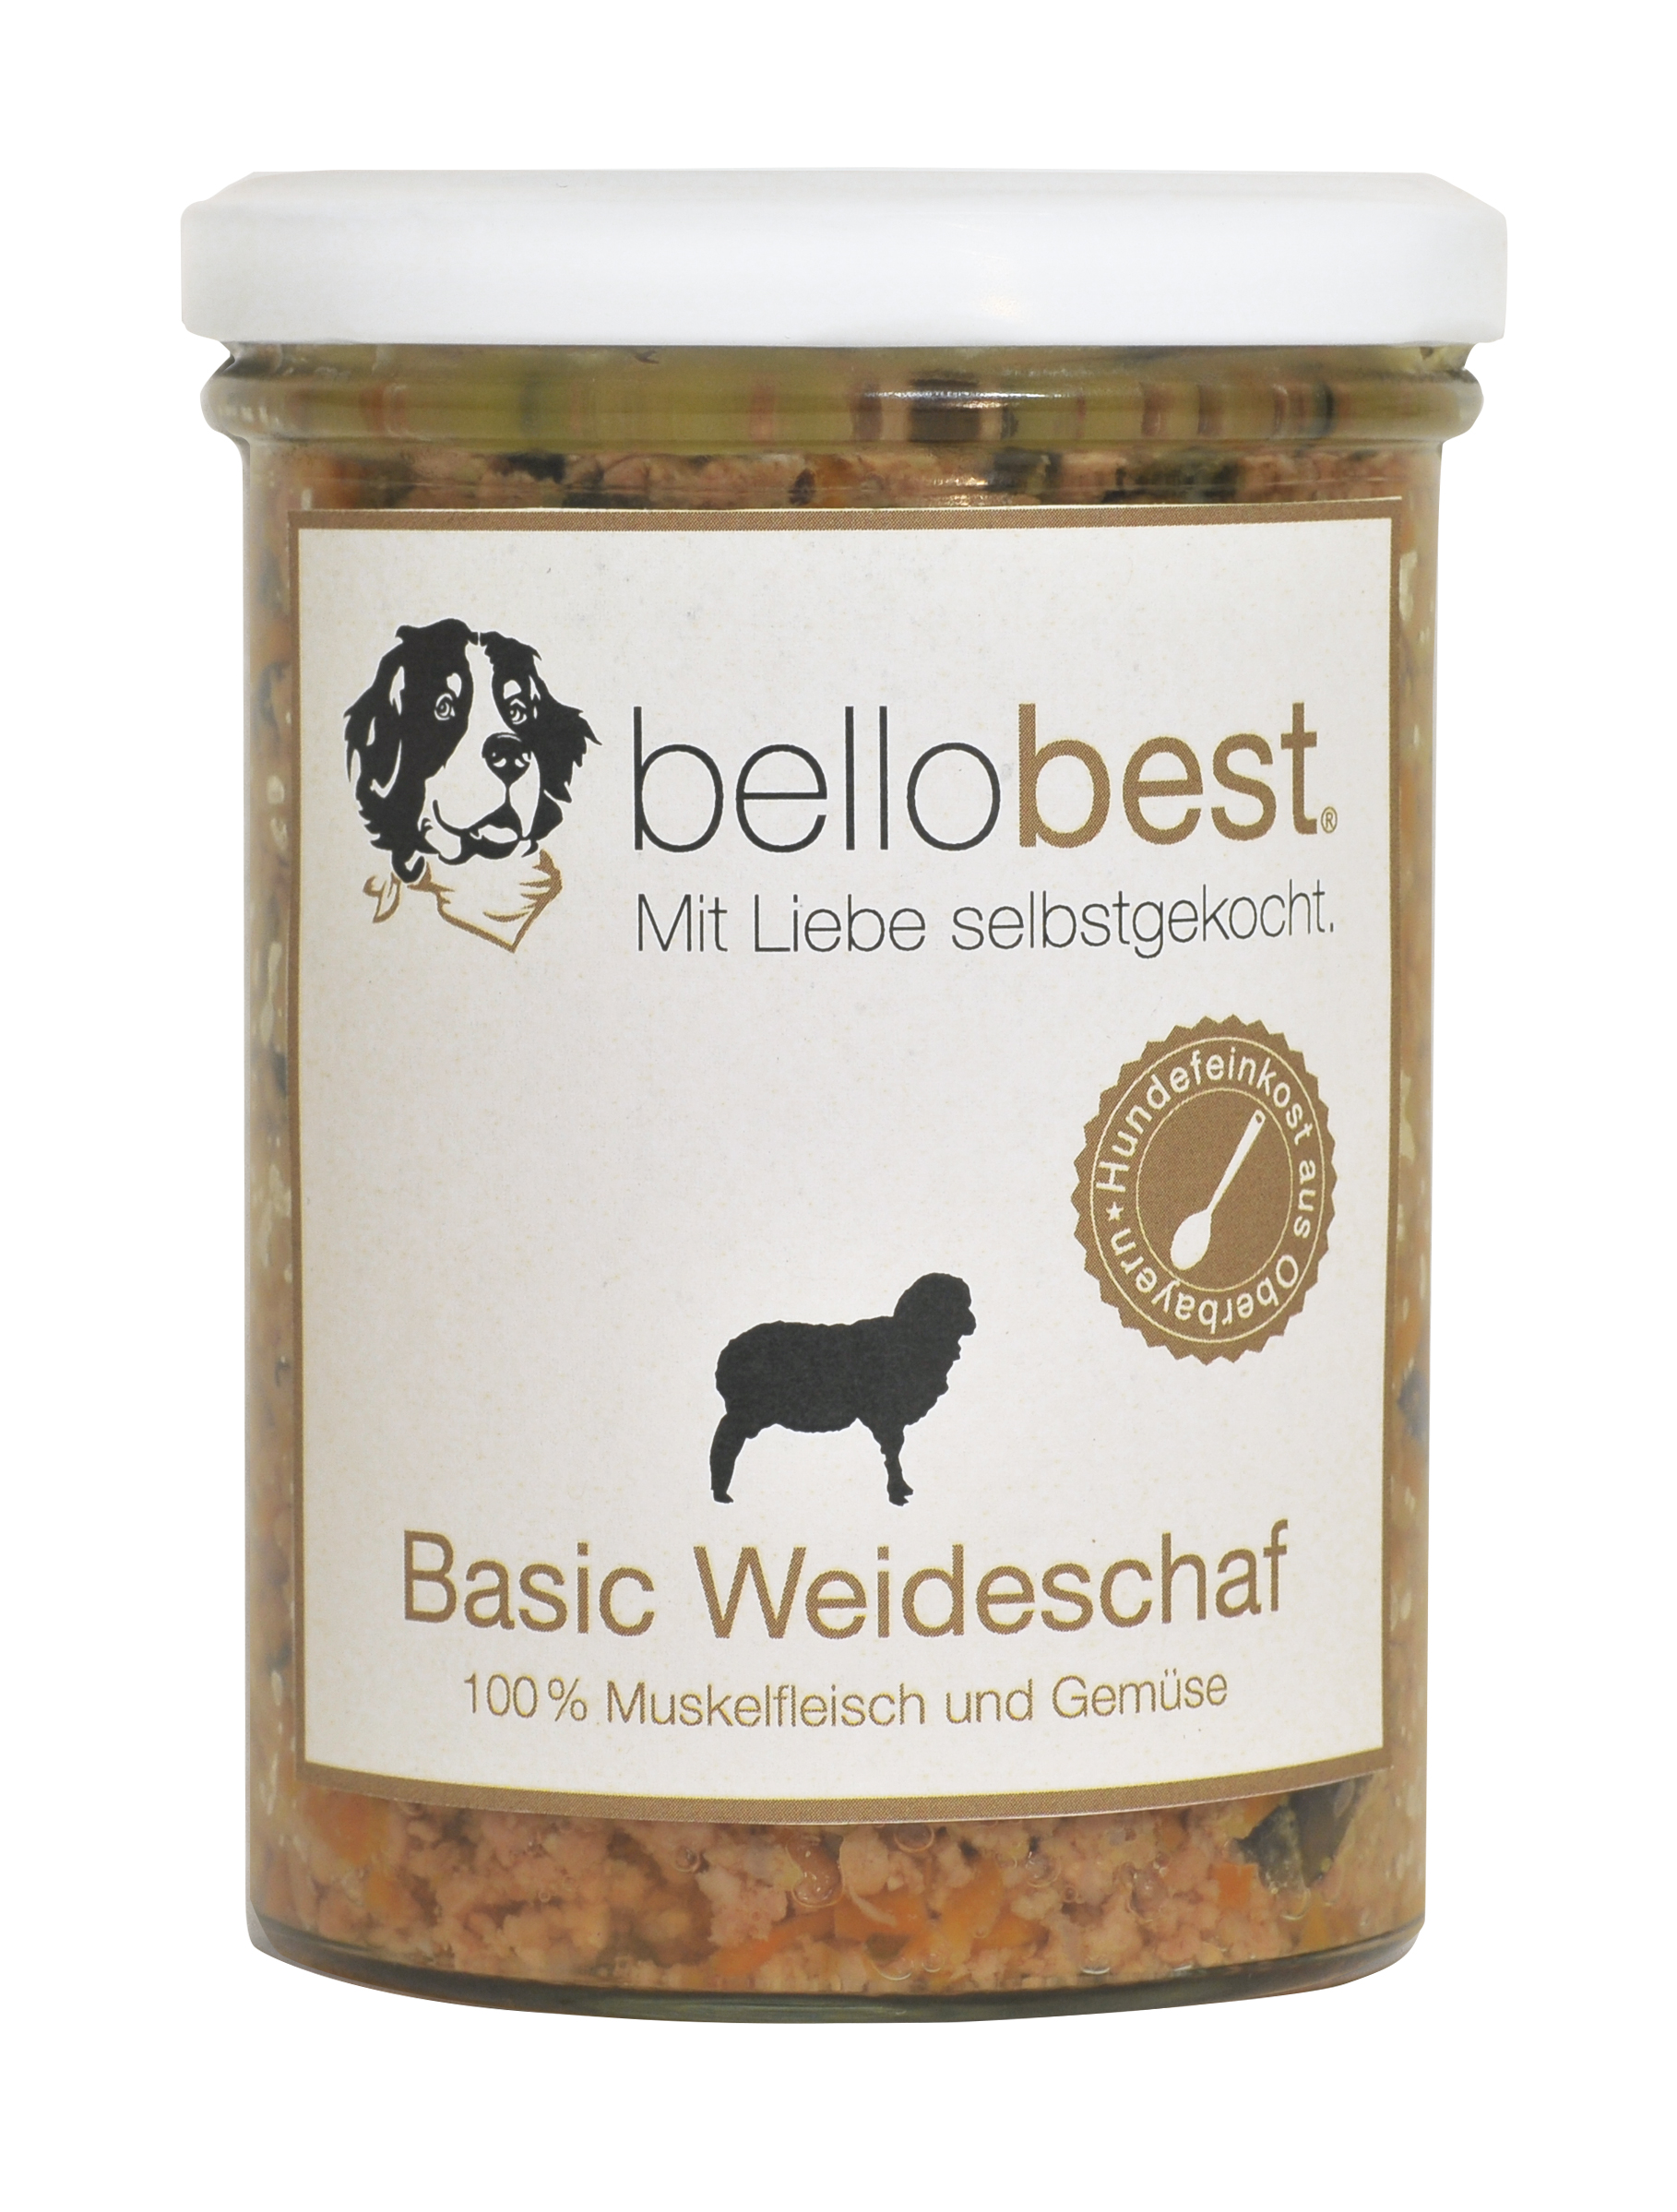 Basic Weideschaf